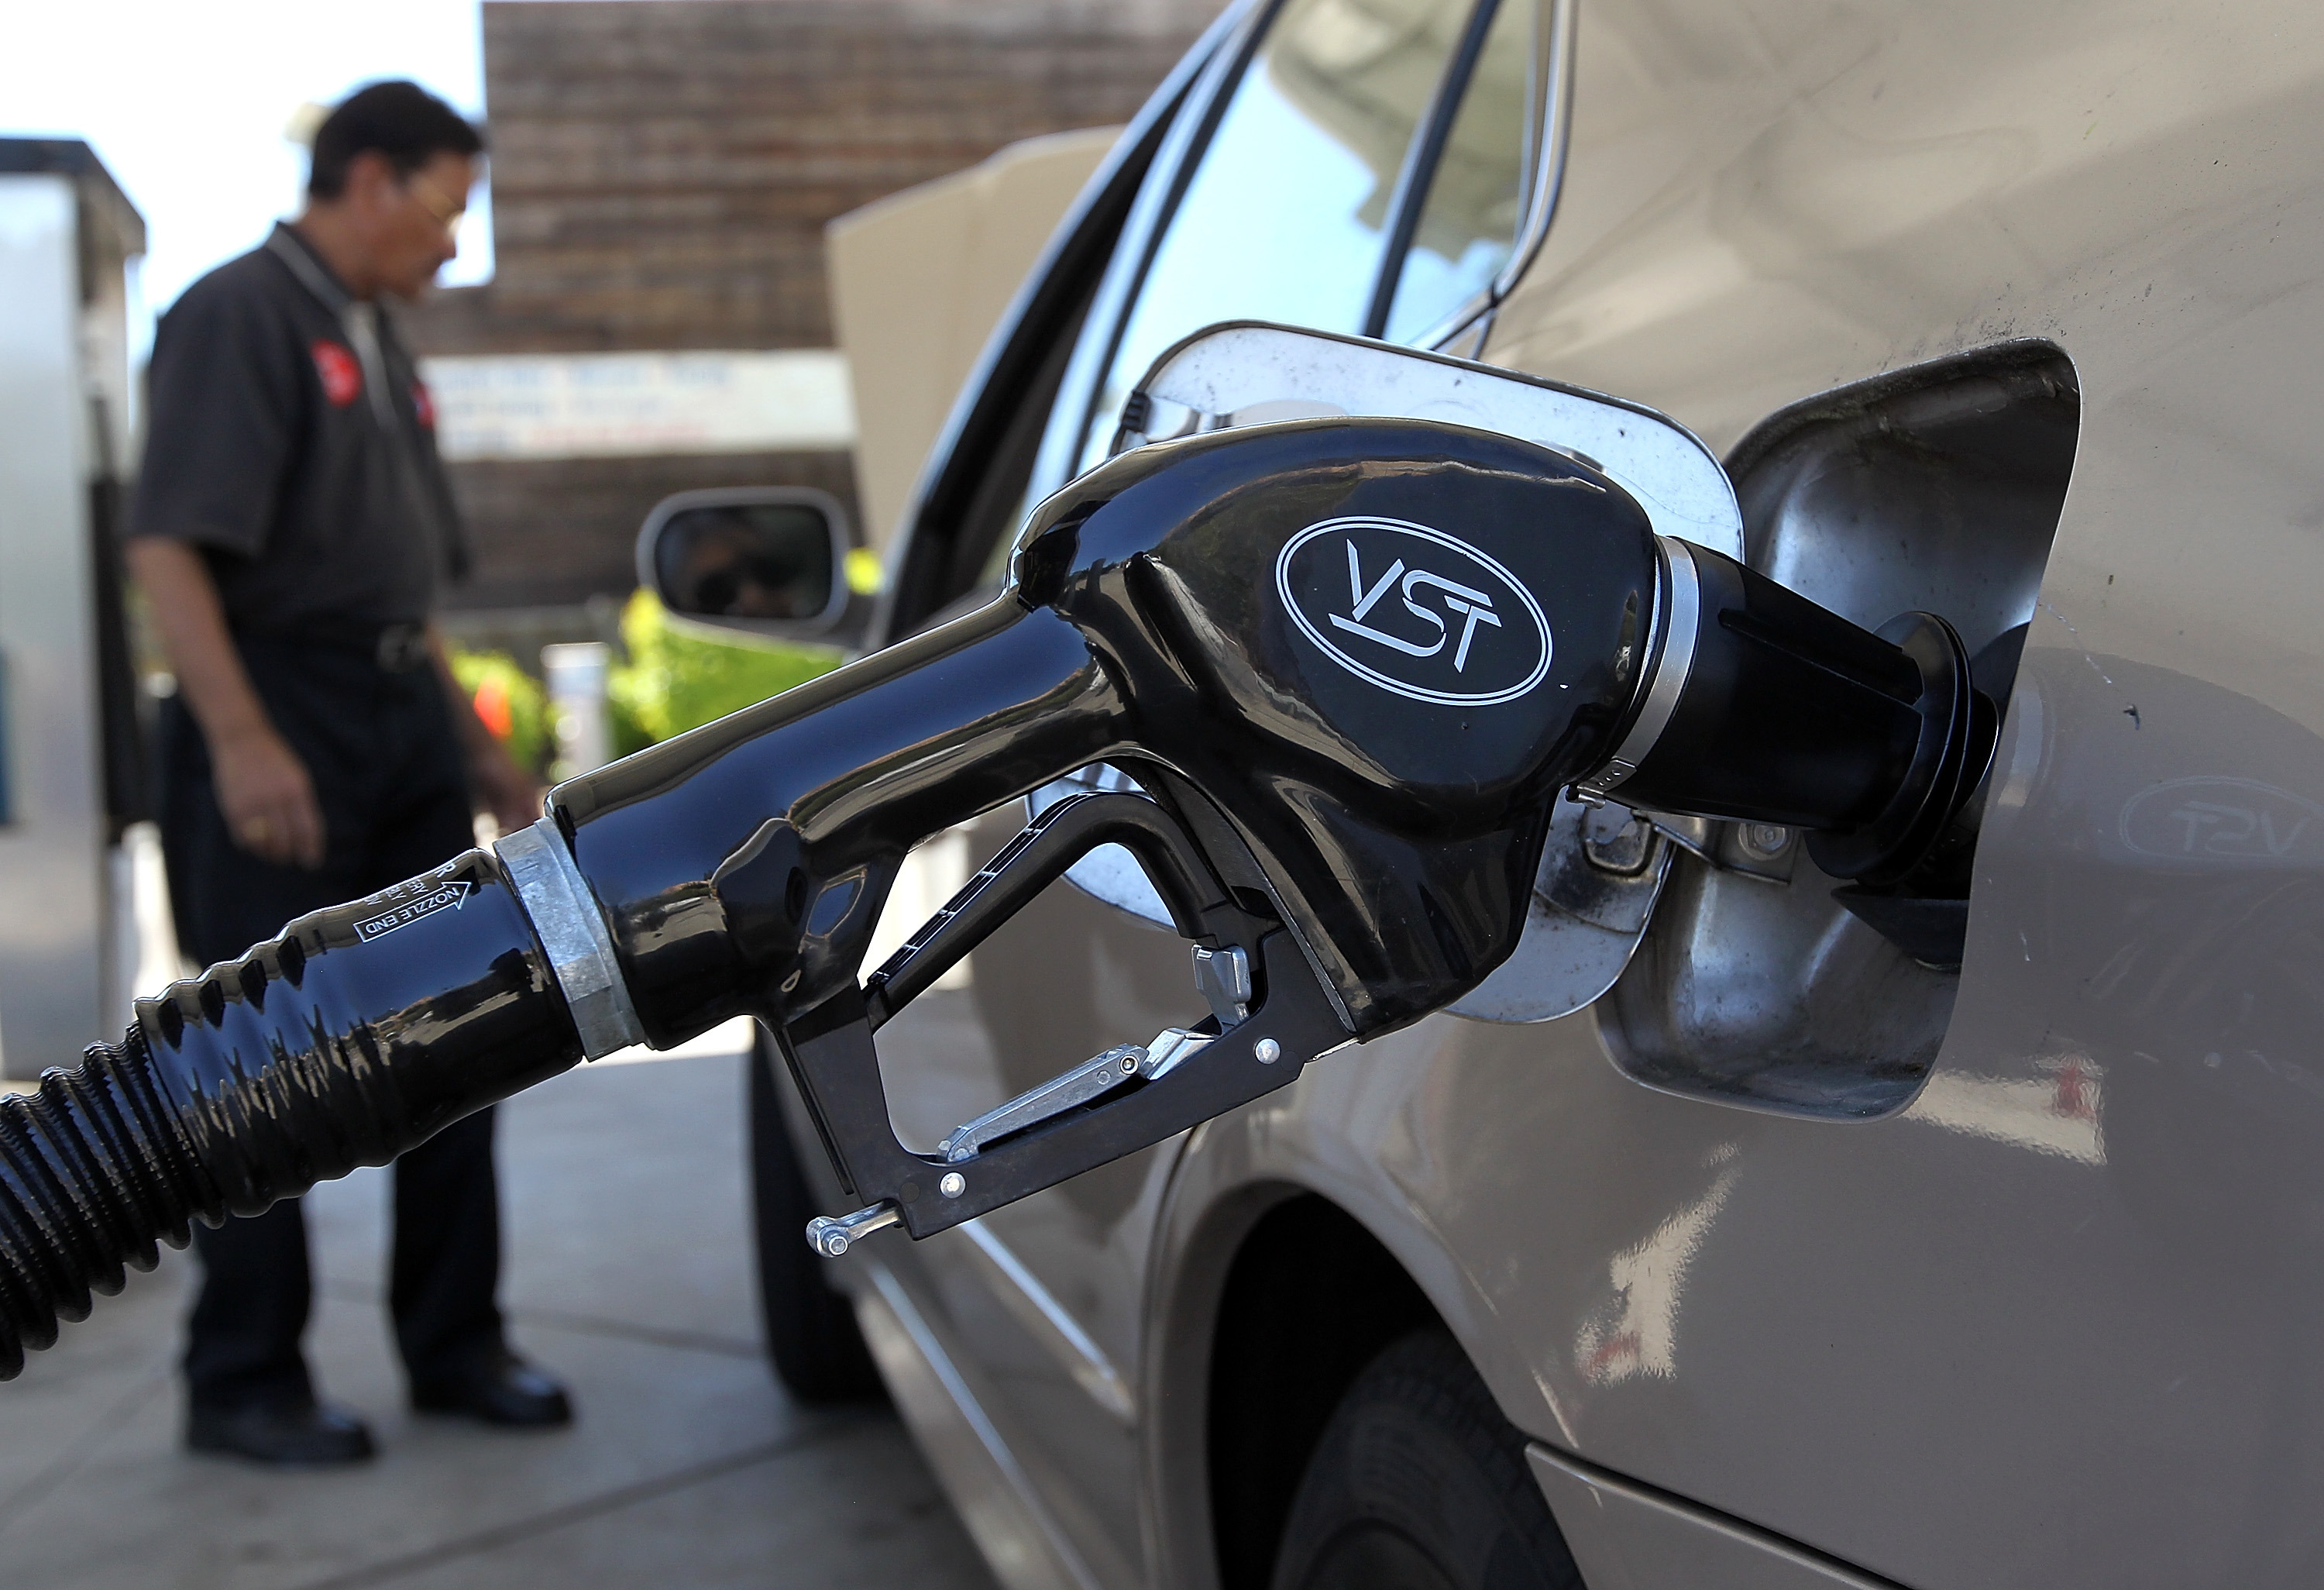 A gasoline pump rests in the tank of a car on June 12, 2012 in San Anselmo, California.